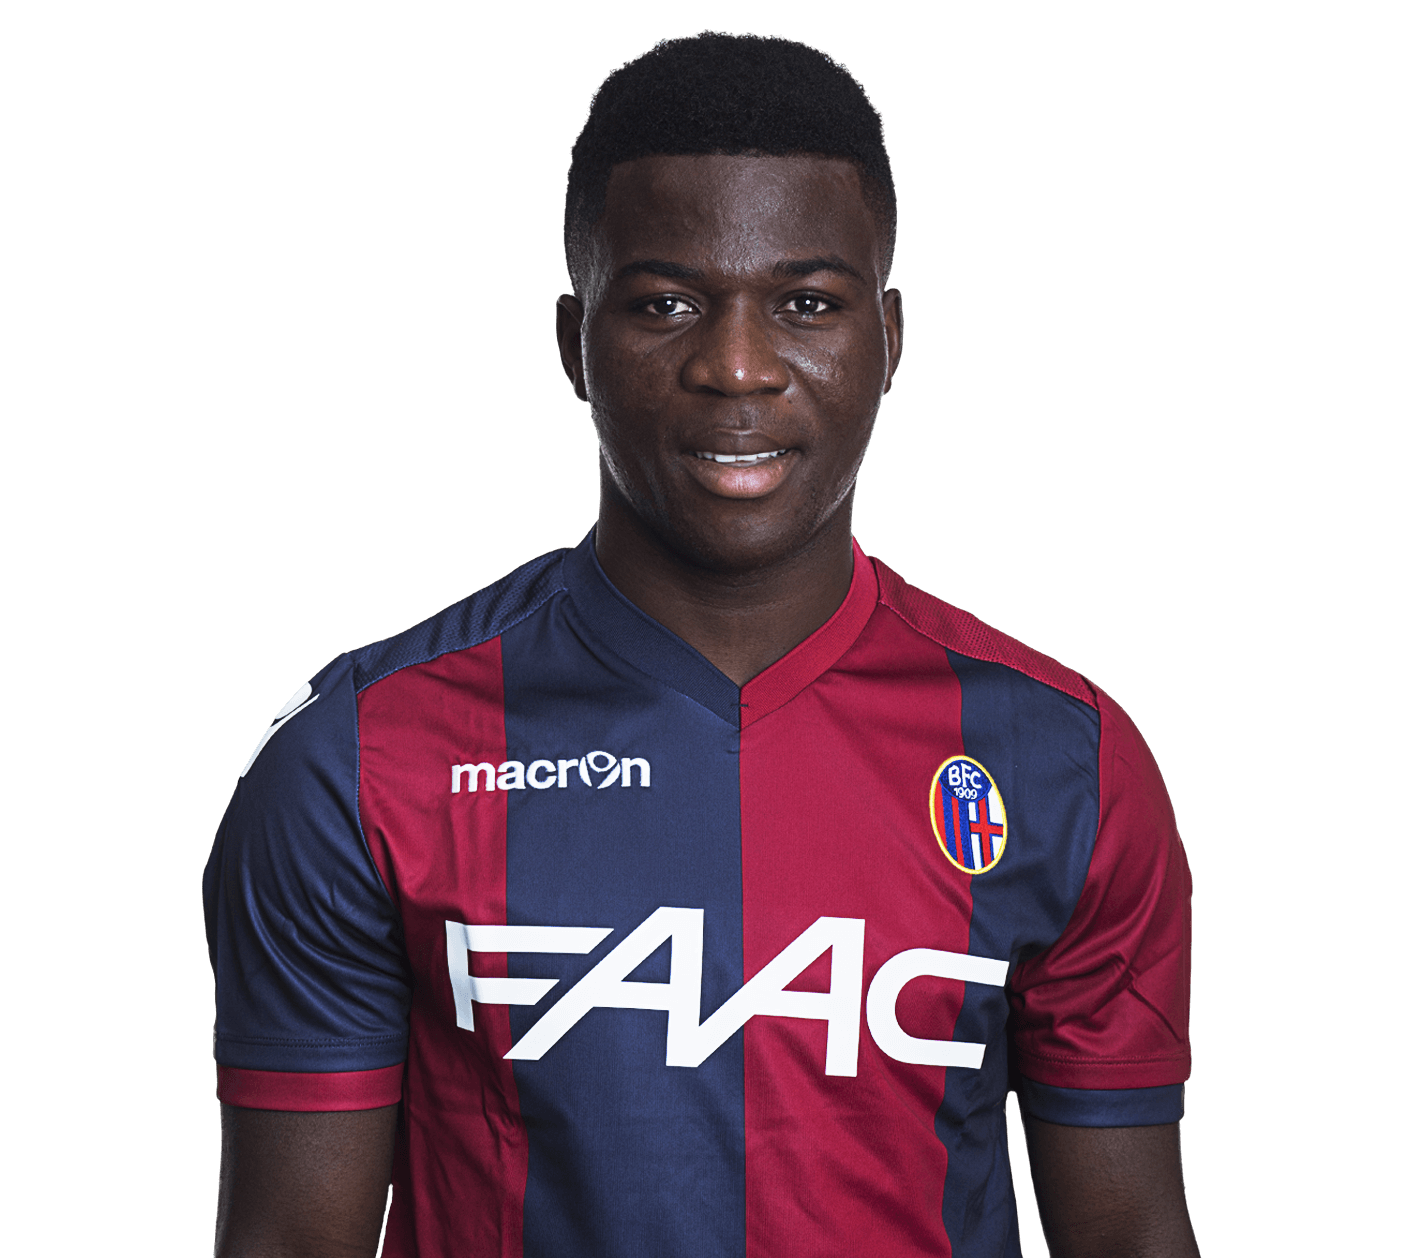 Bologna midfield ace Godfred Donsah pushing for Black Stars with consistent displays in Serie A